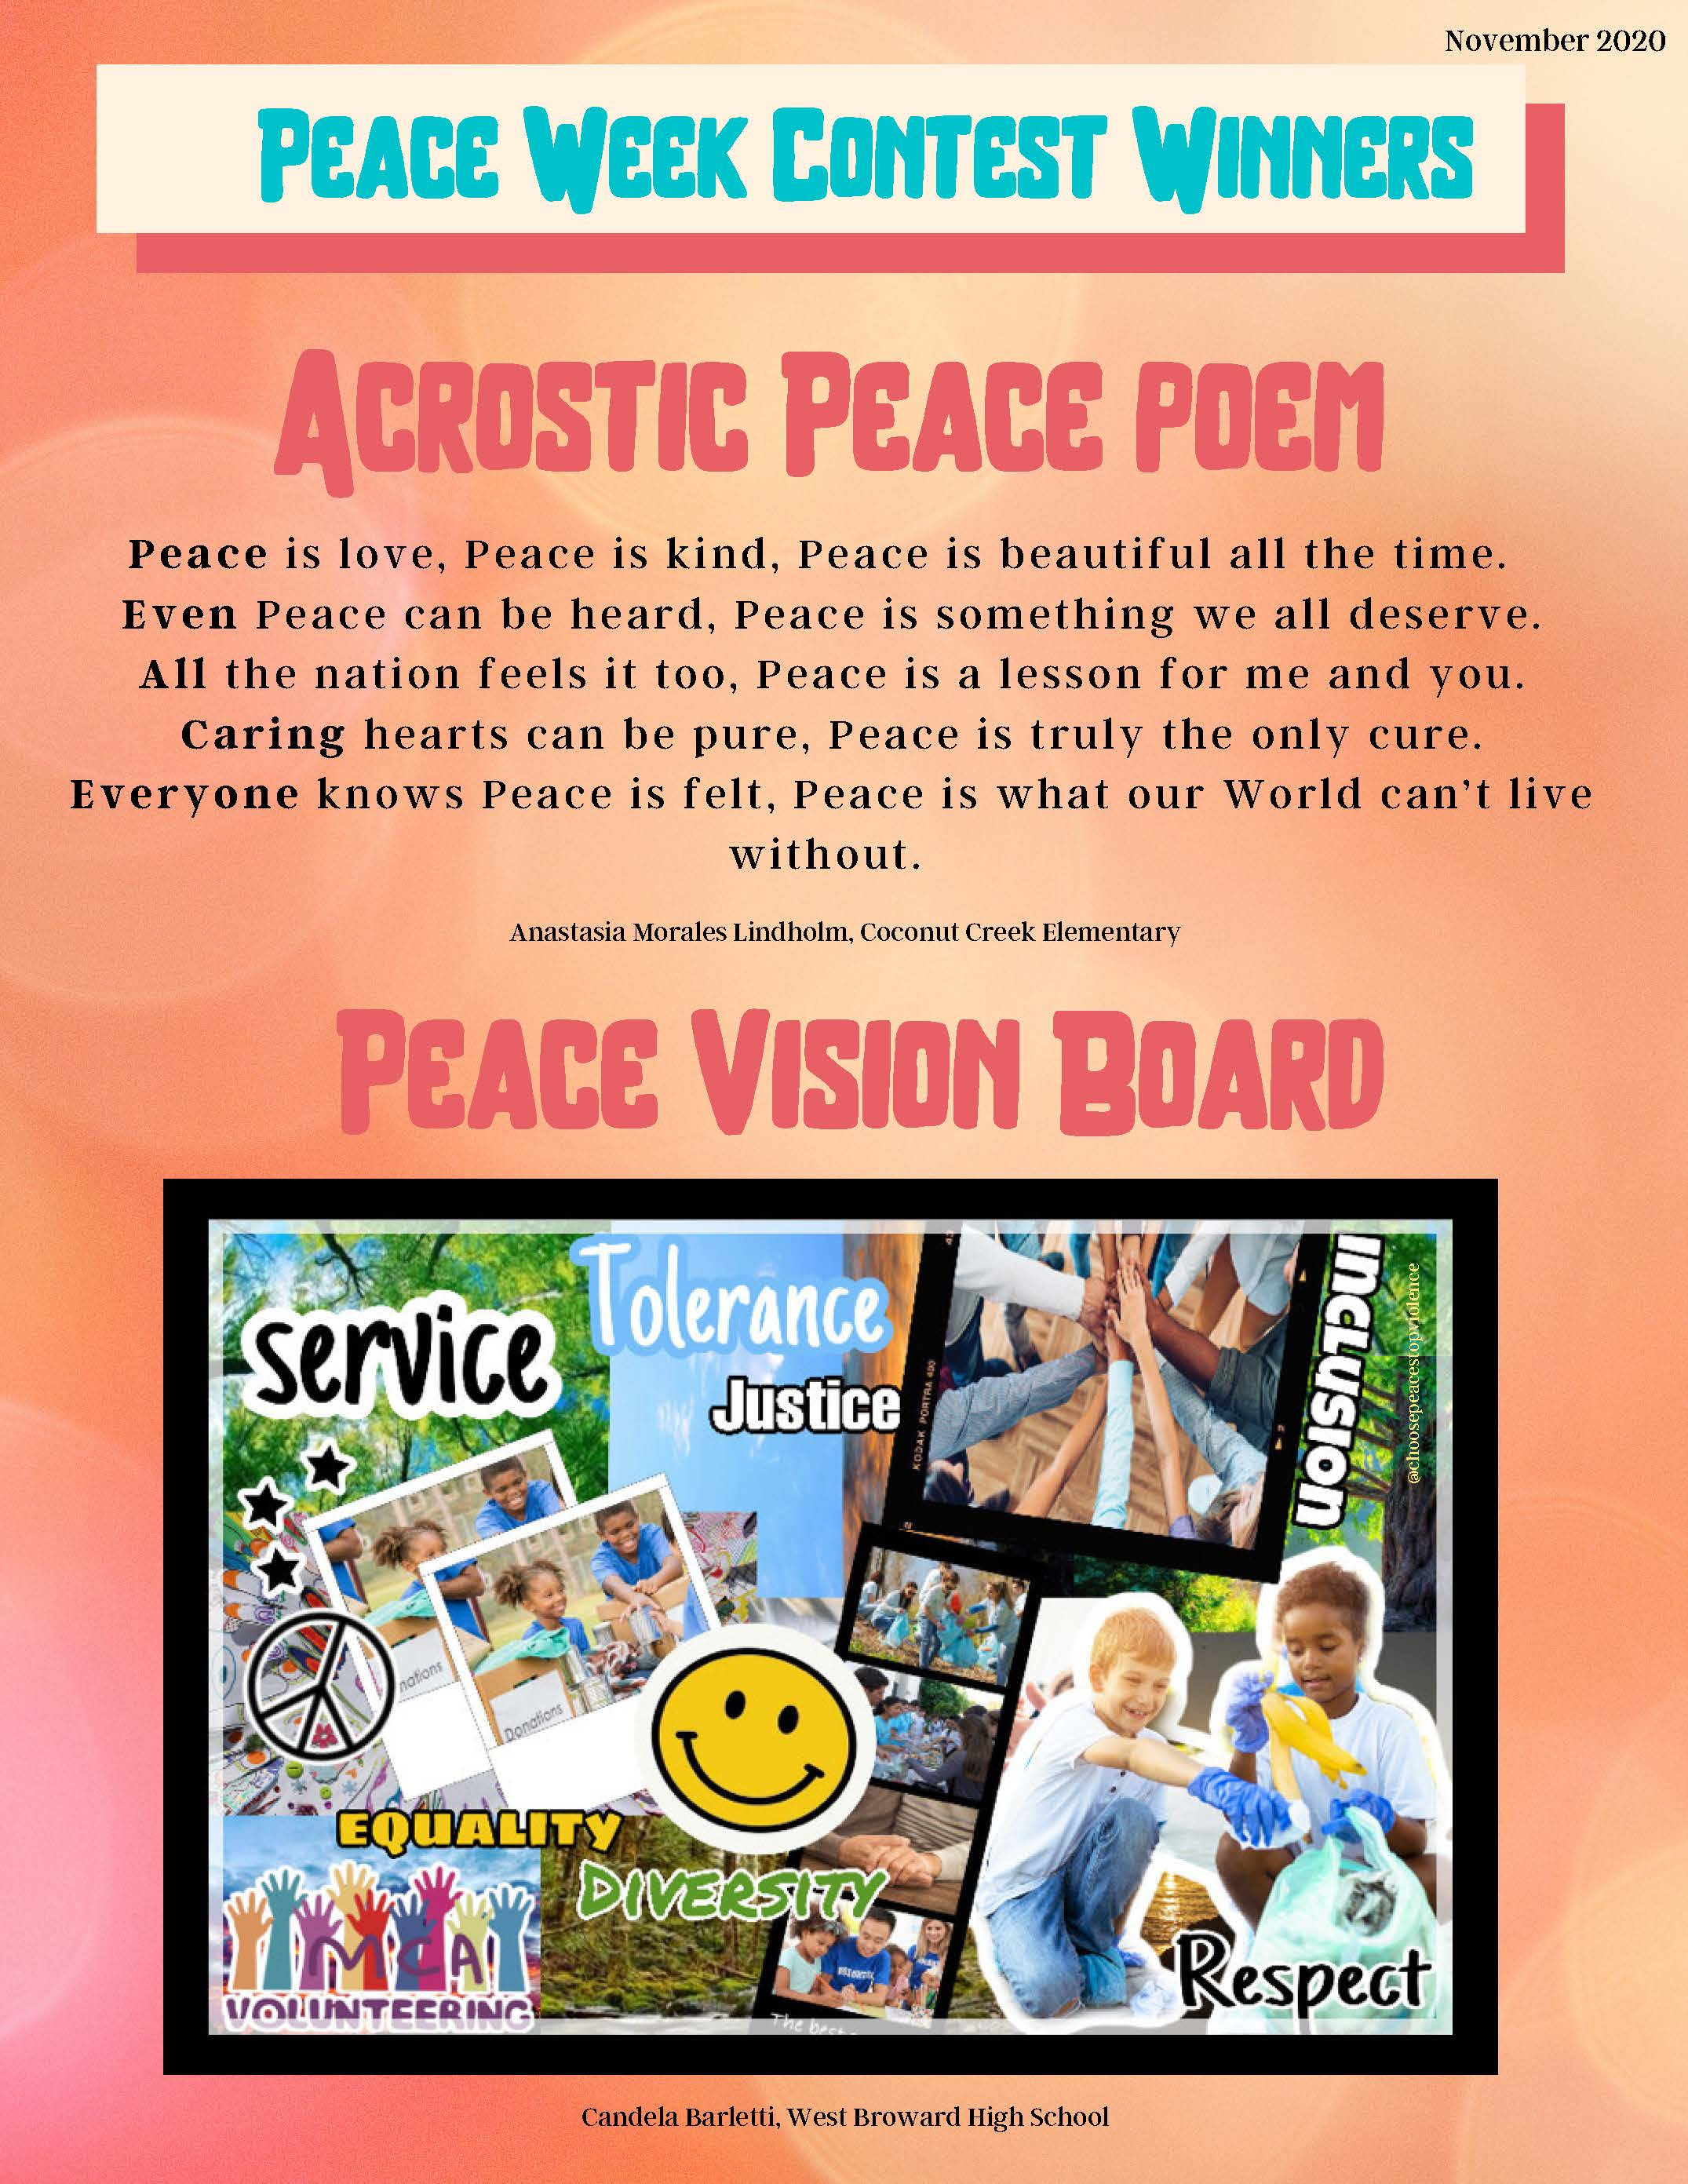 Choose%20Peace%20Week%20Contest%20Winning%20Entries%202020.jpg